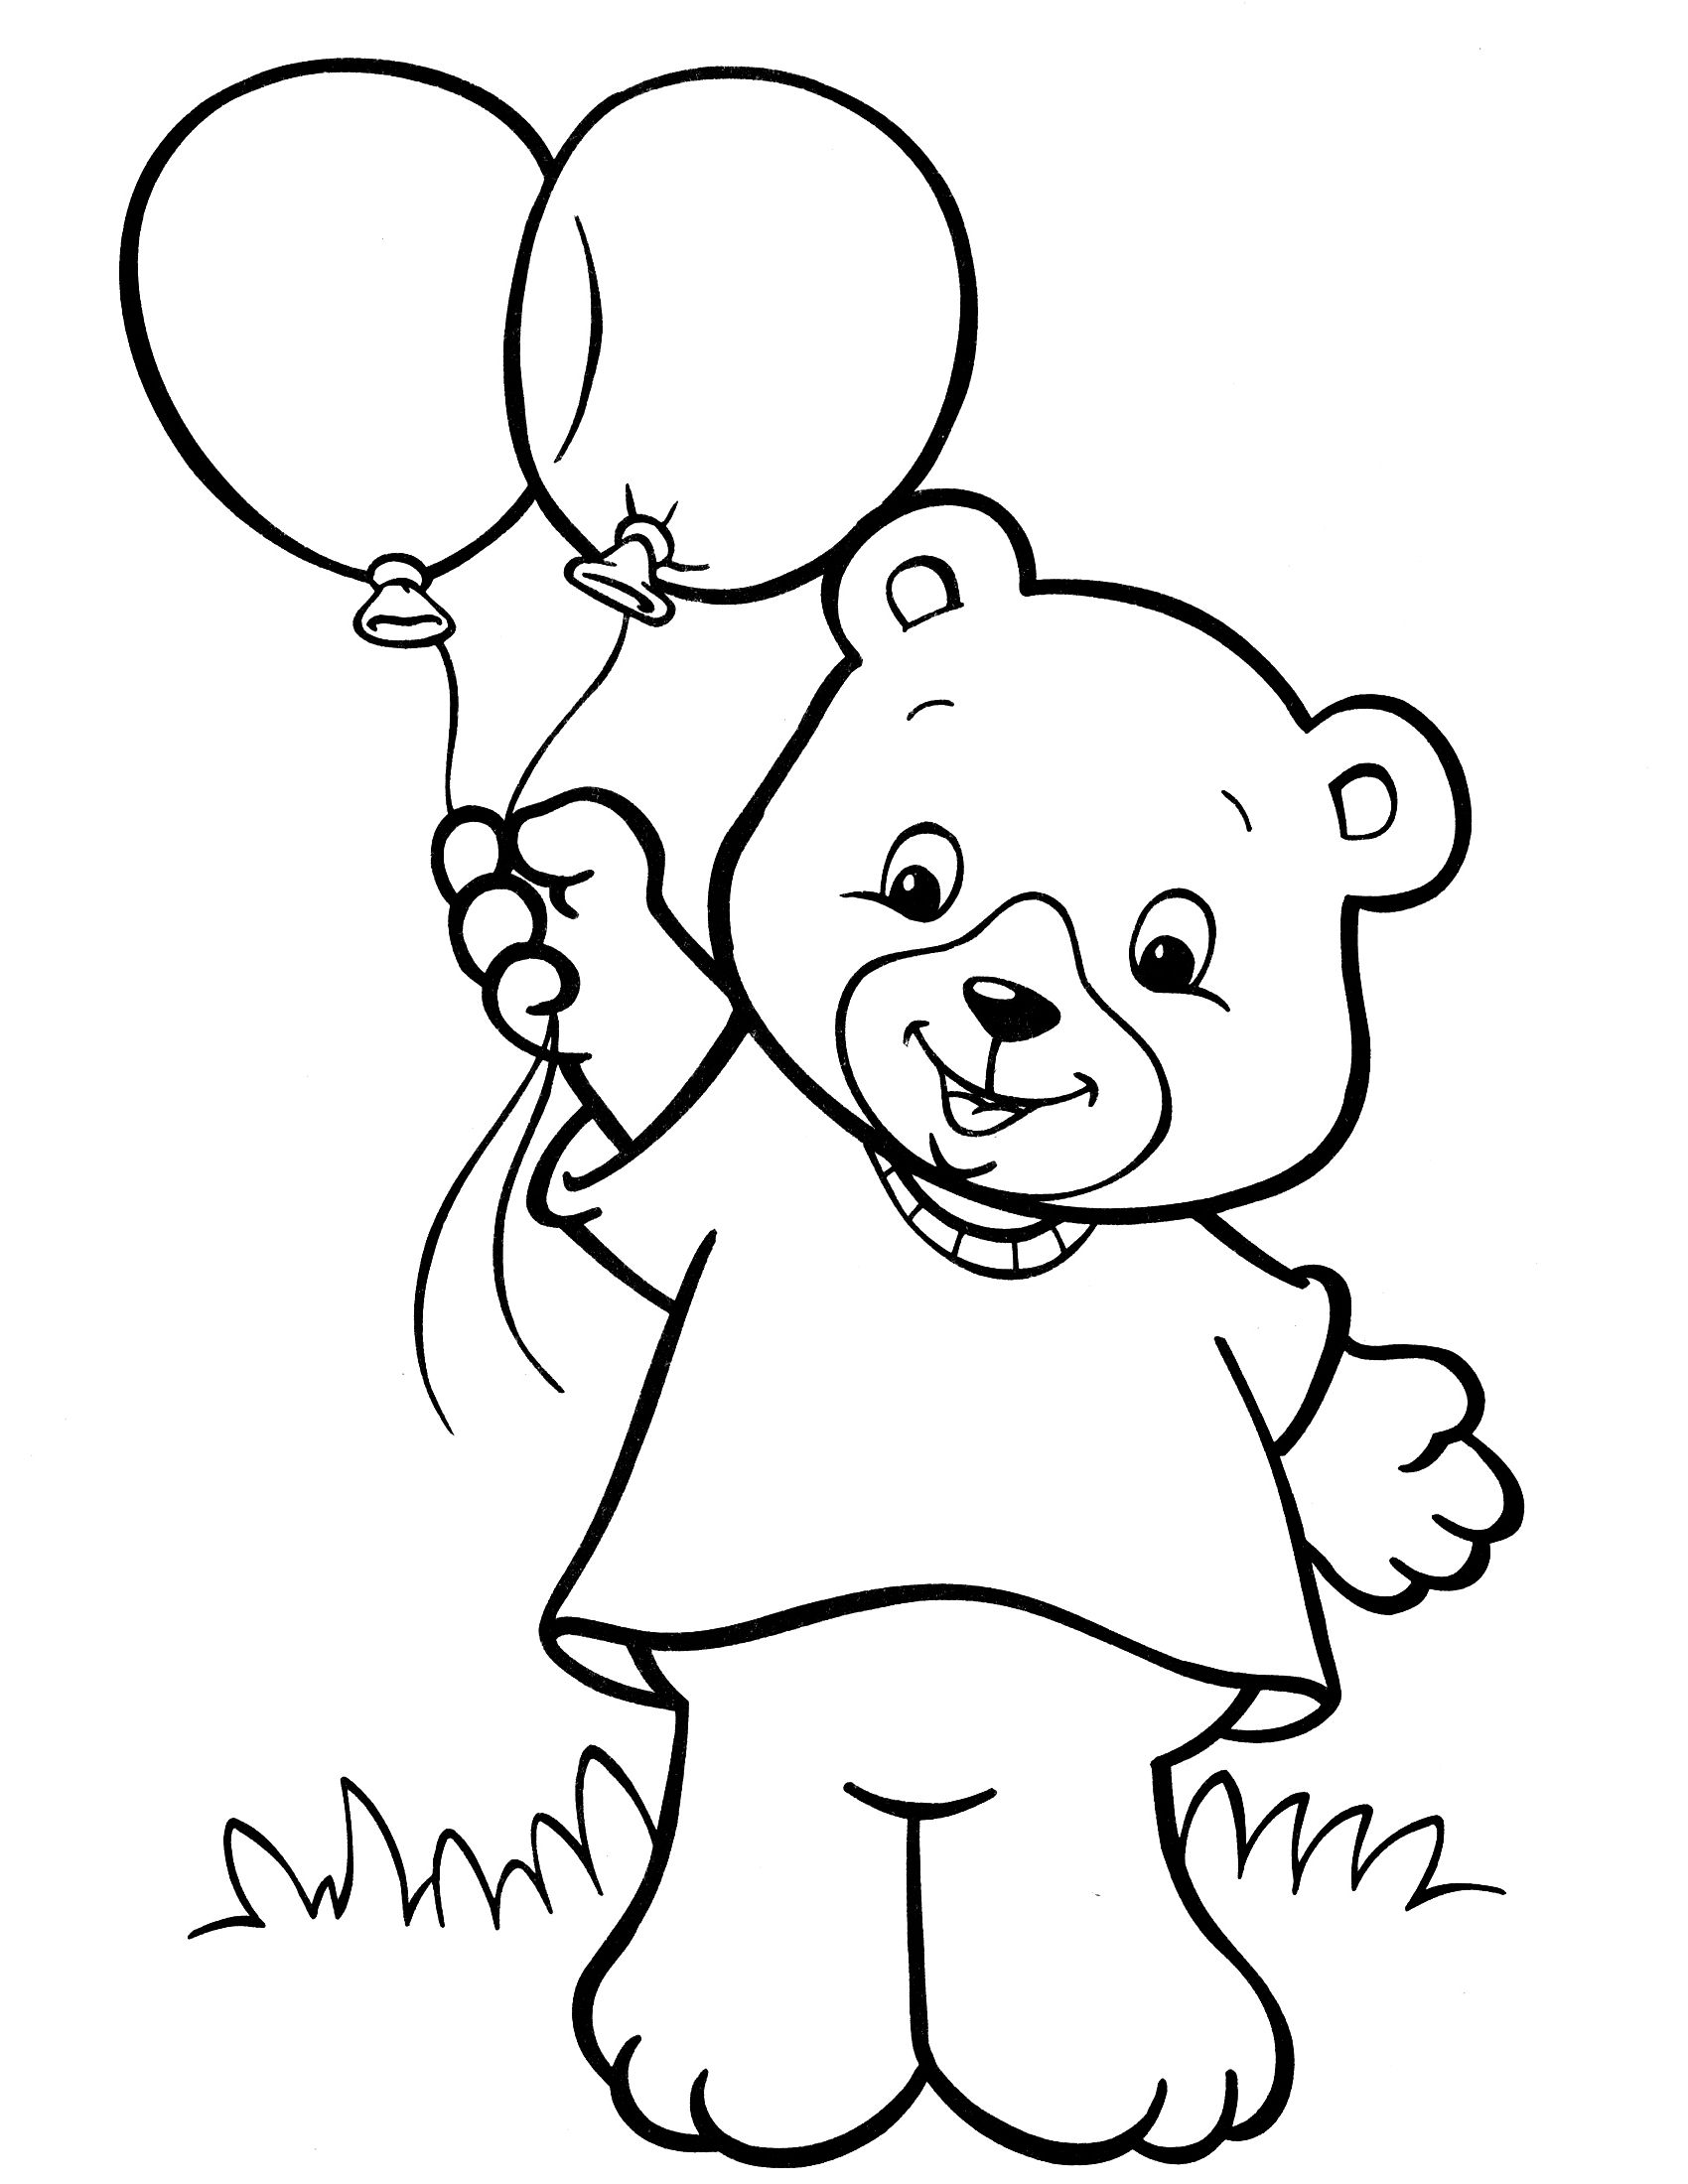 Exclusive Image Of Coloring Pages For 3 Year Olds